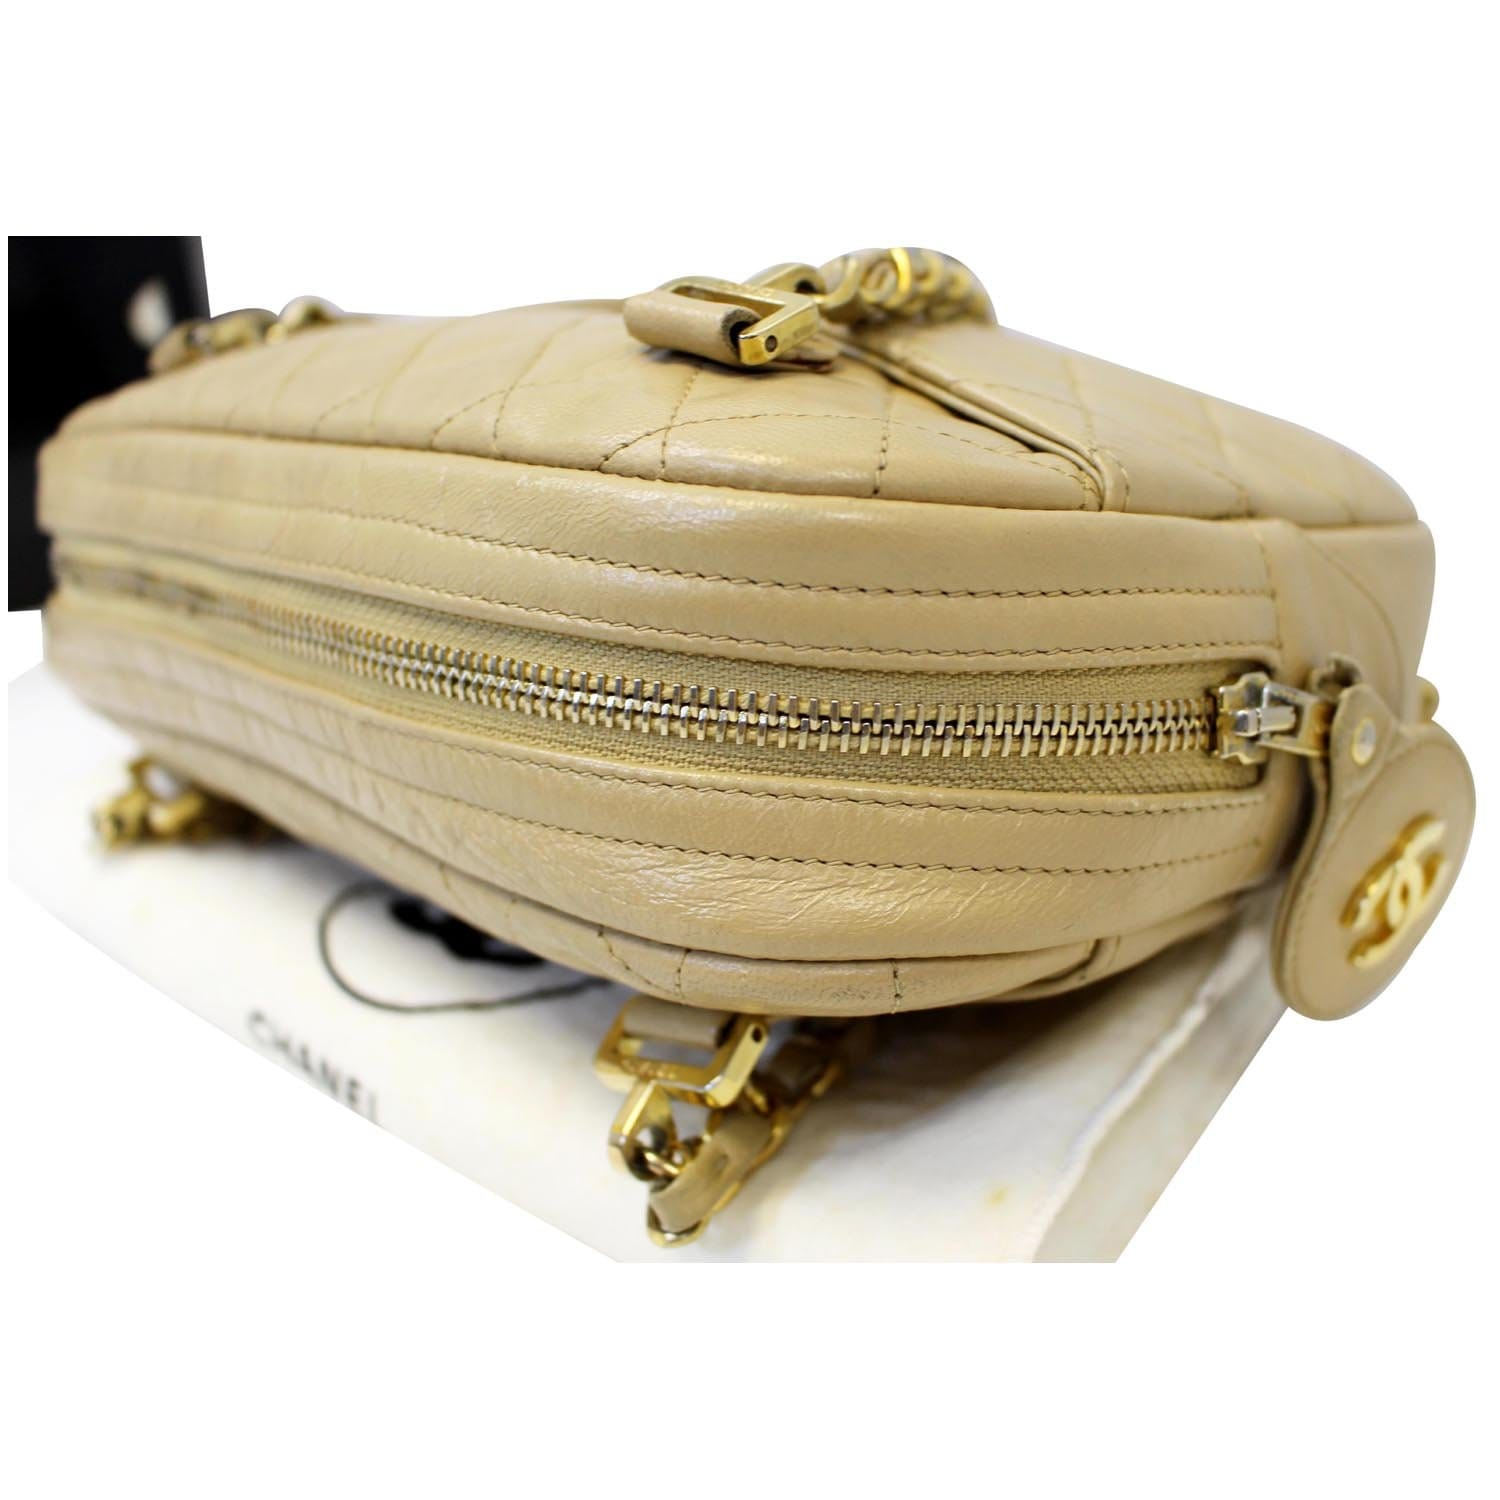 f77e678a2537c4 CHANEL Beige Lambskin Leather Camera Shoulder Bag-US